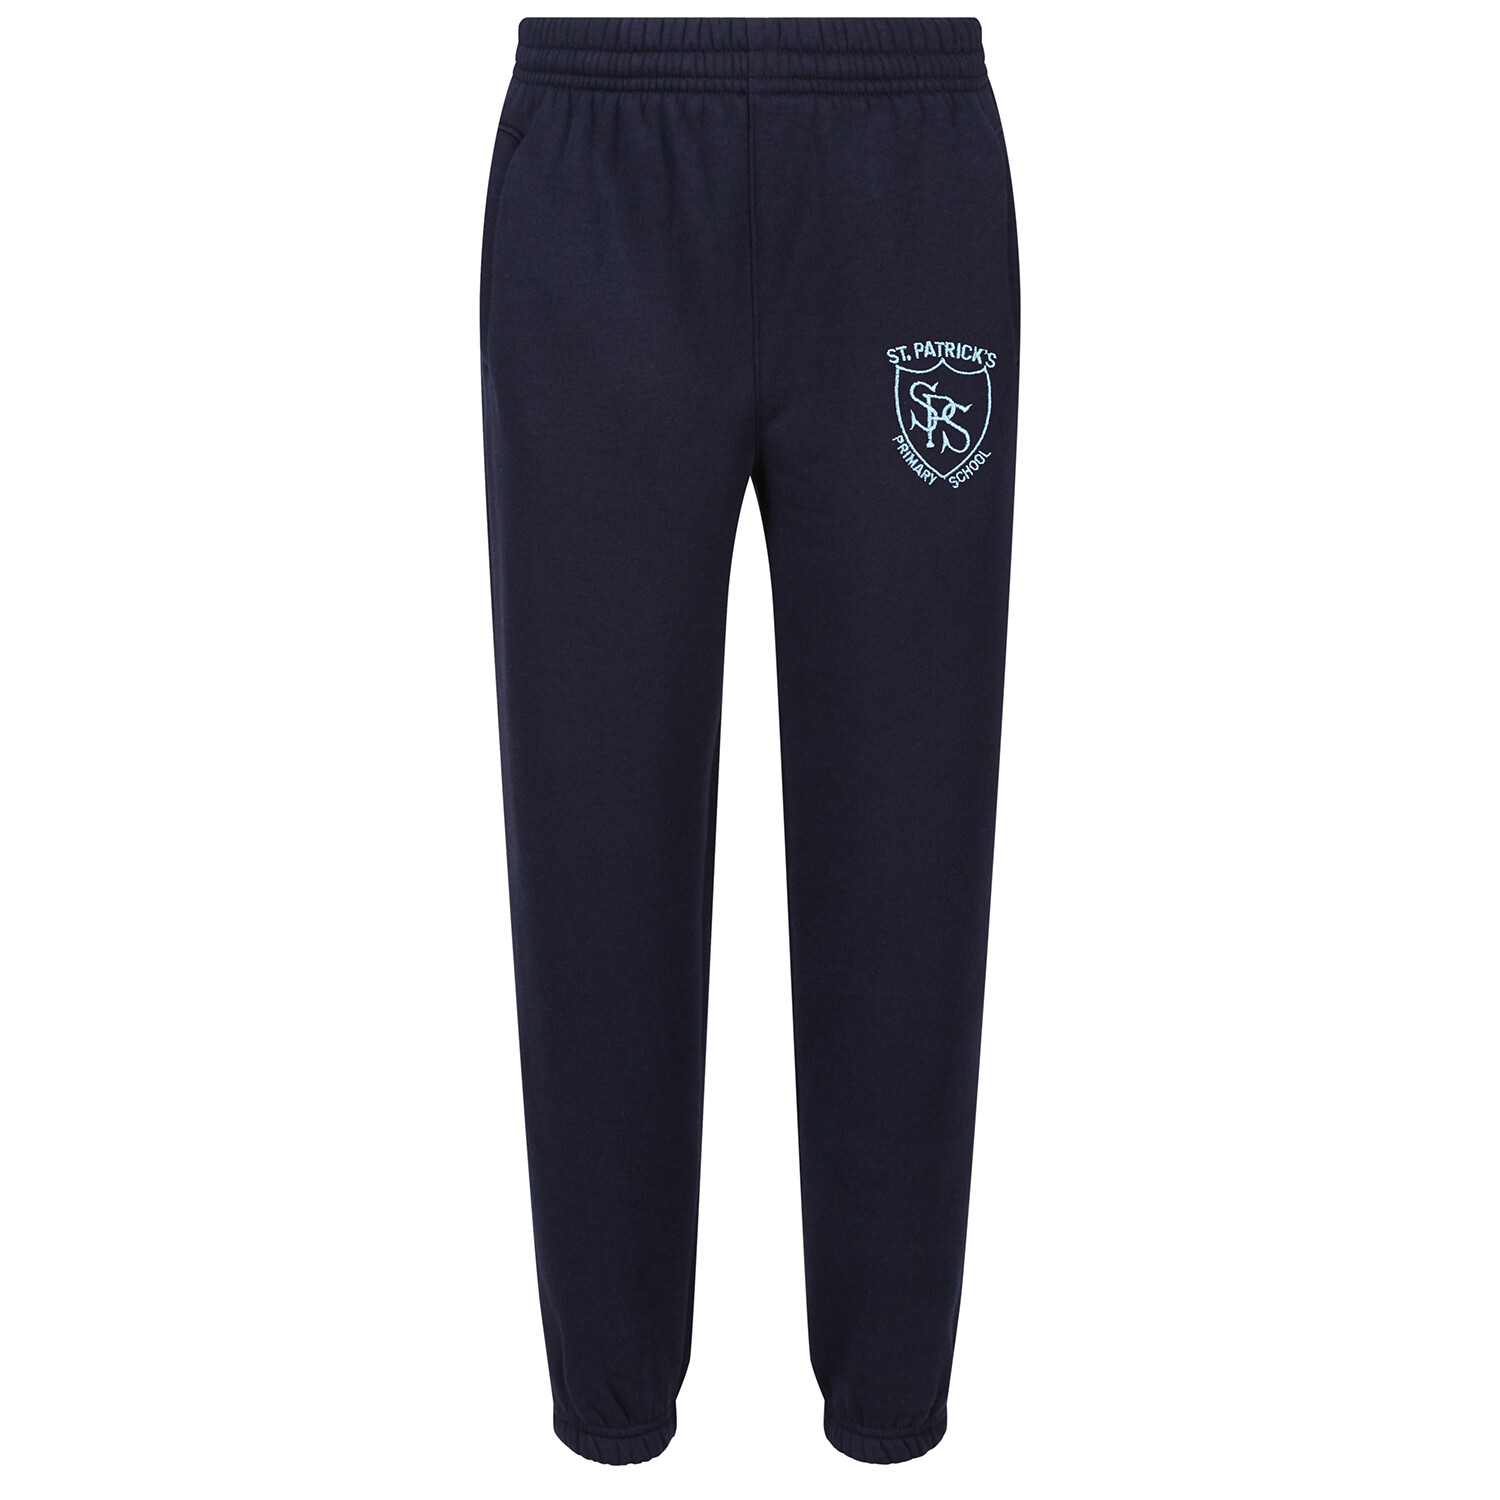 St Patrick's Jog Pant for PE & Outdoor Activity